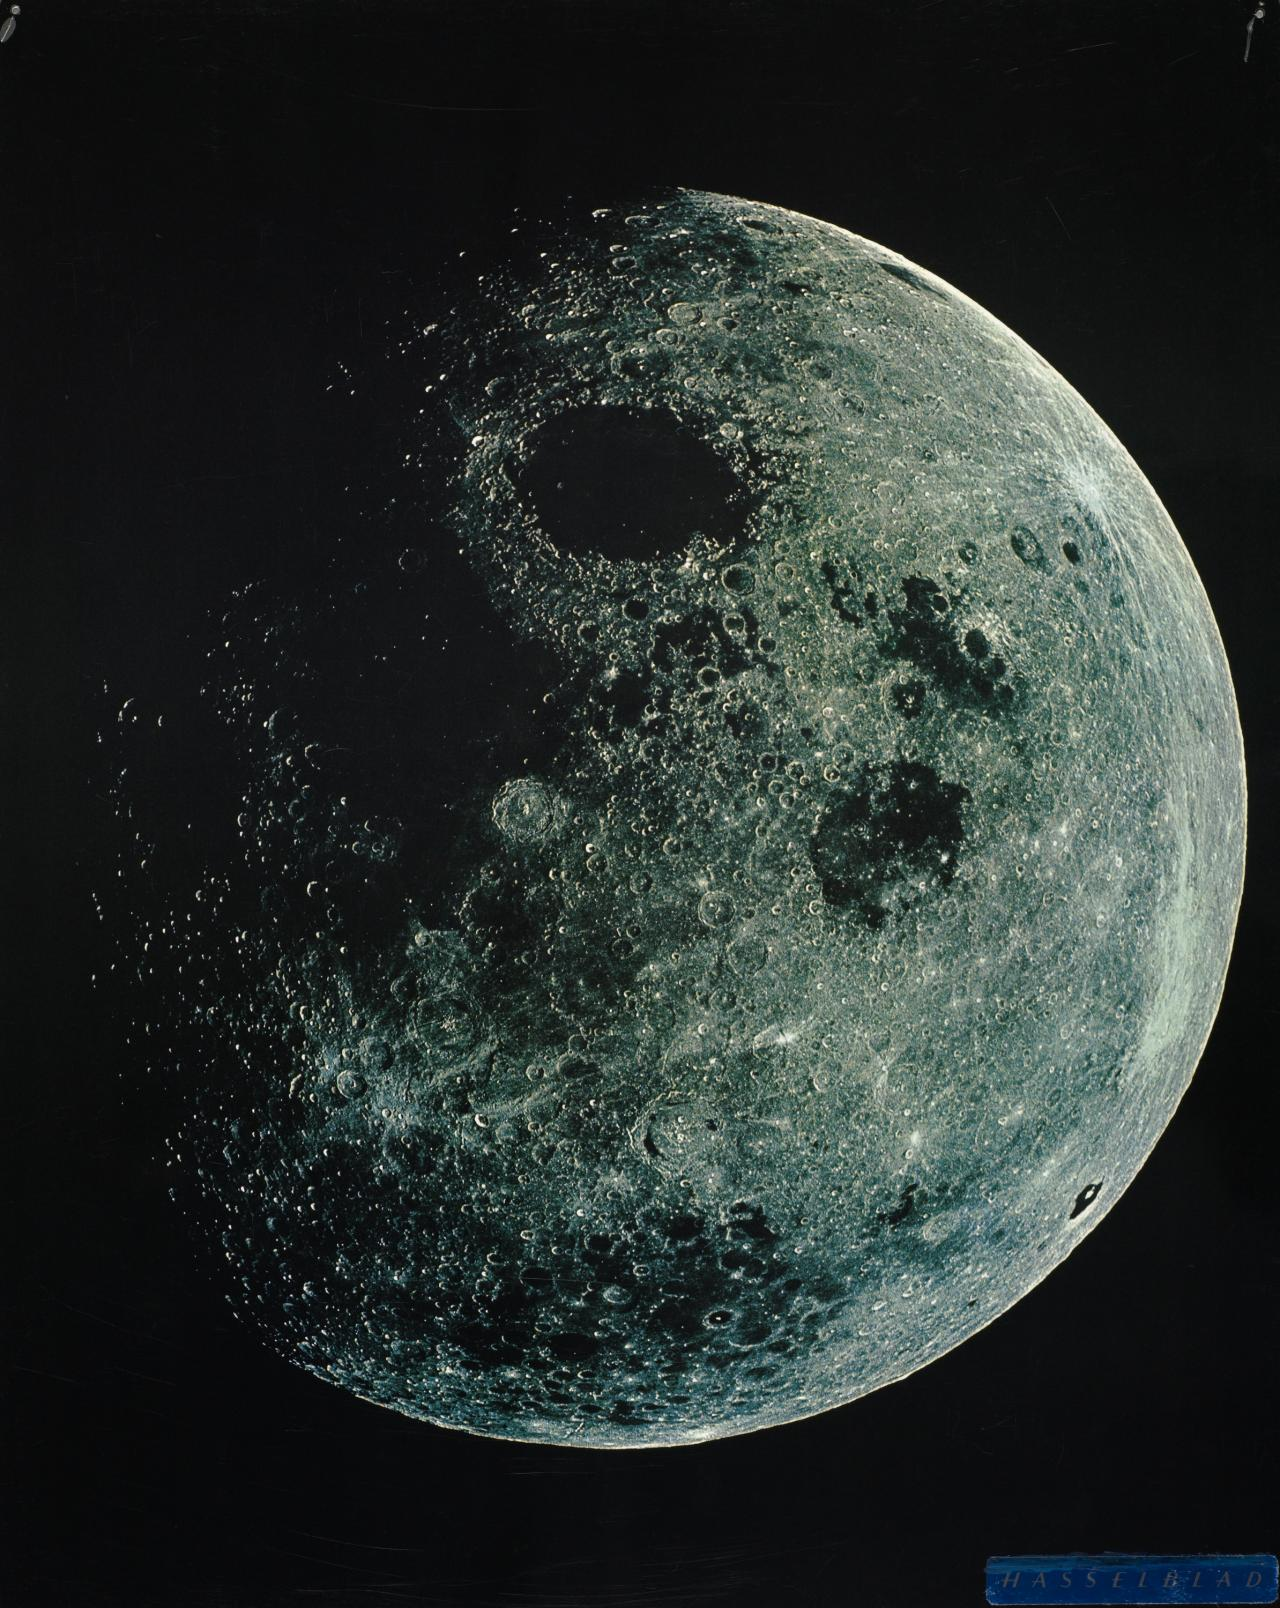 The moon, December 1968, taken from Apollo Spacecraft